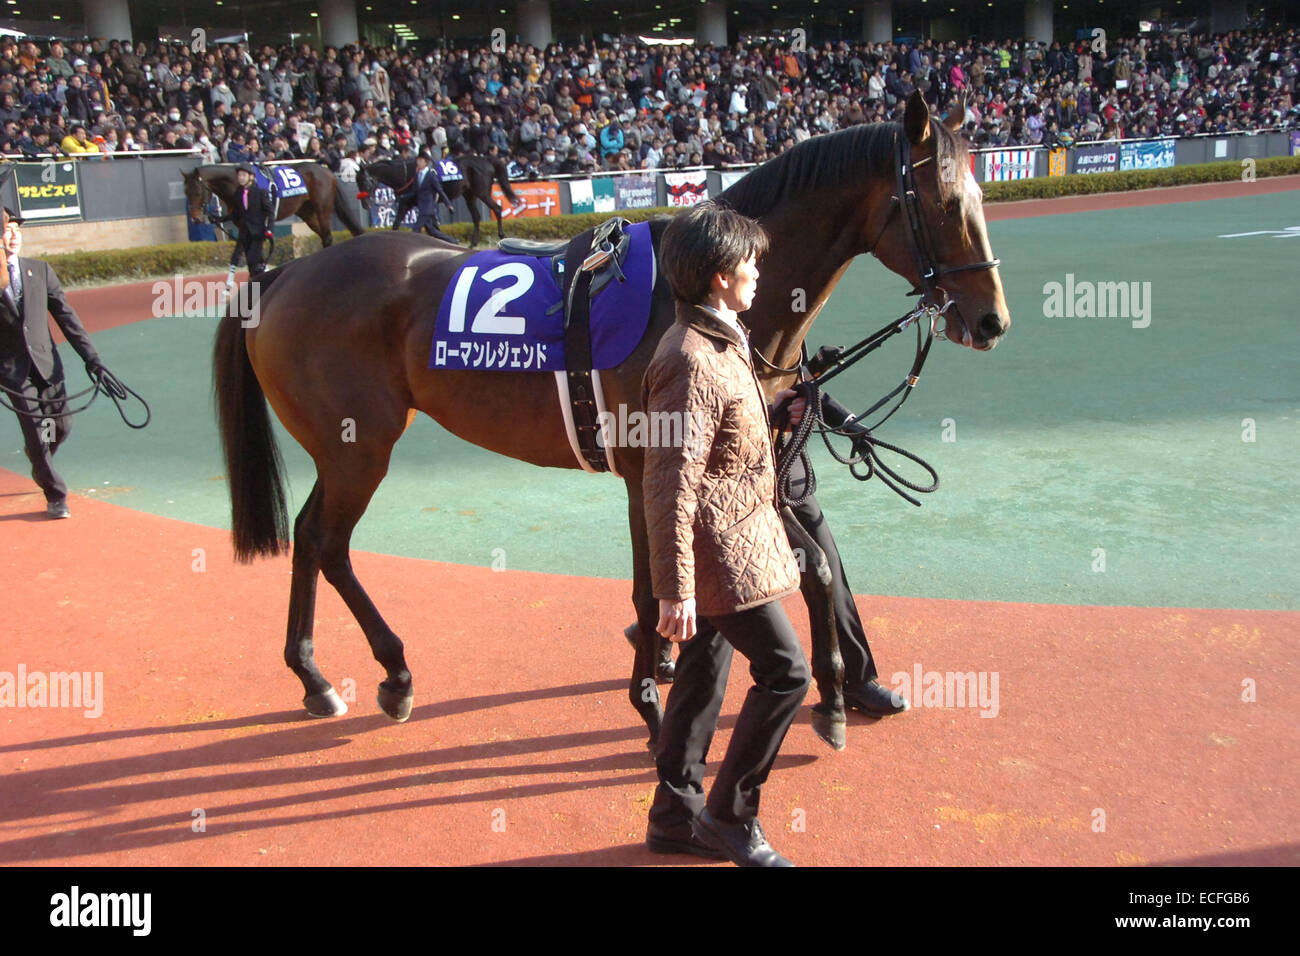 Aichi, Japan. 7th Dec, 2014. Roman Legend Horse Racing : Roman Legend is led through the paddock before the Champions - Stock Image